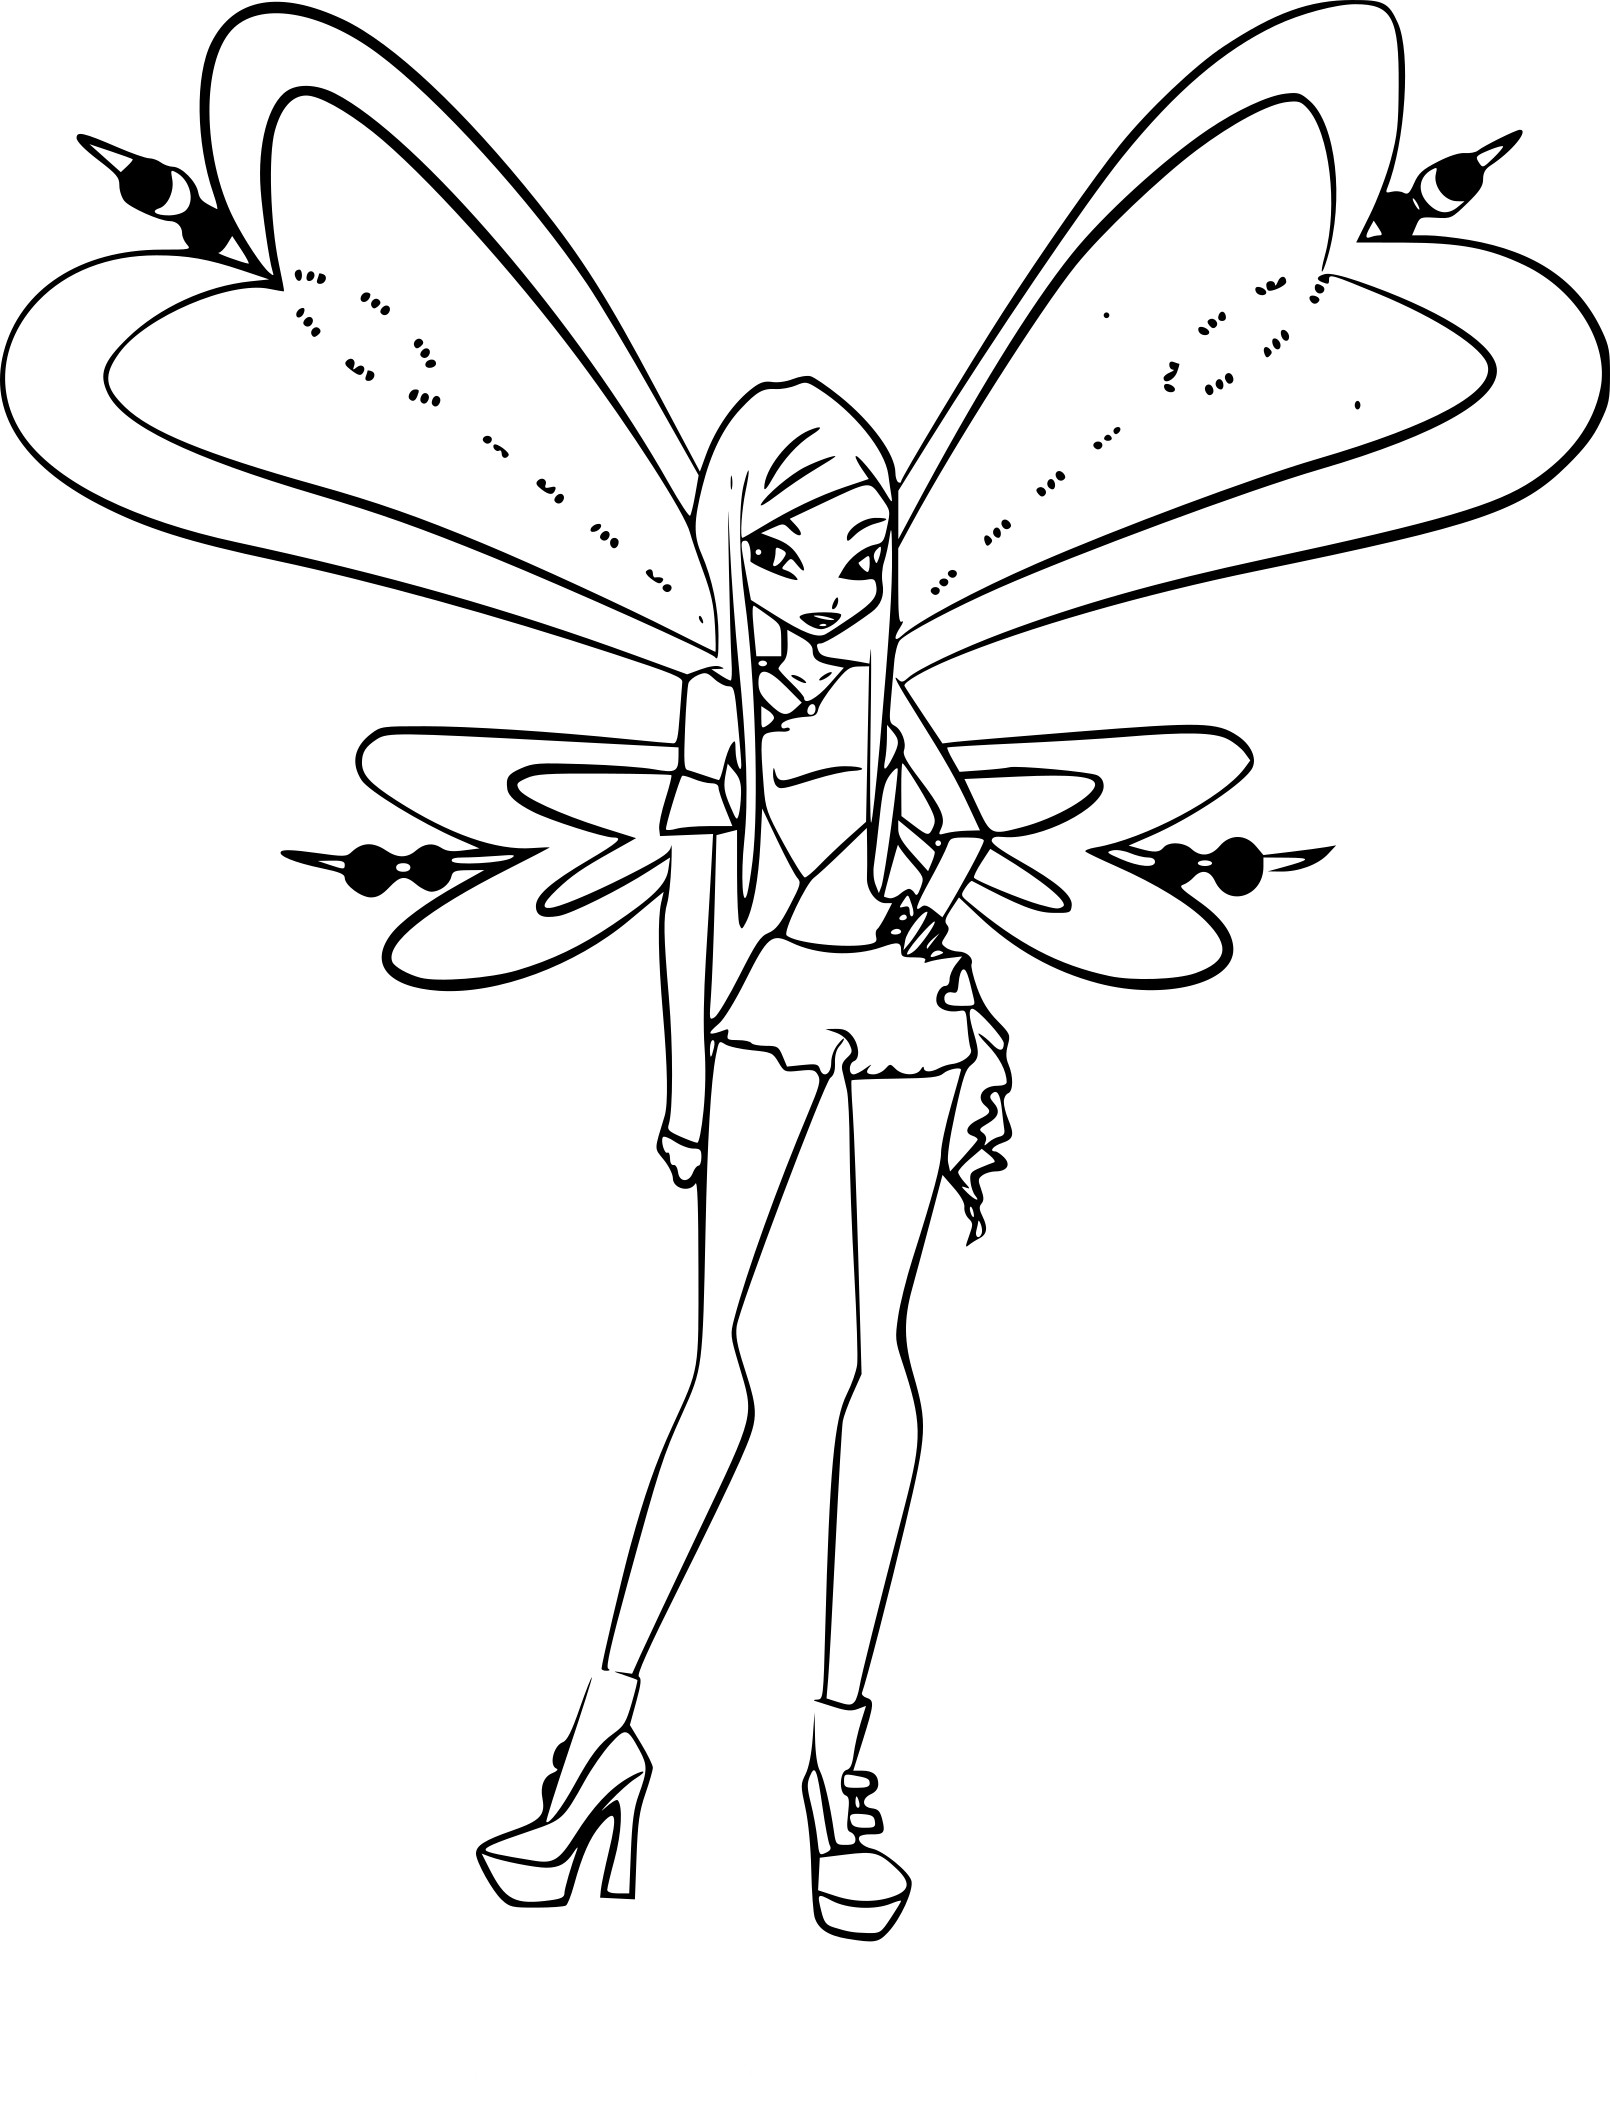 Luxe Dessin A Colorier Winx Bloom